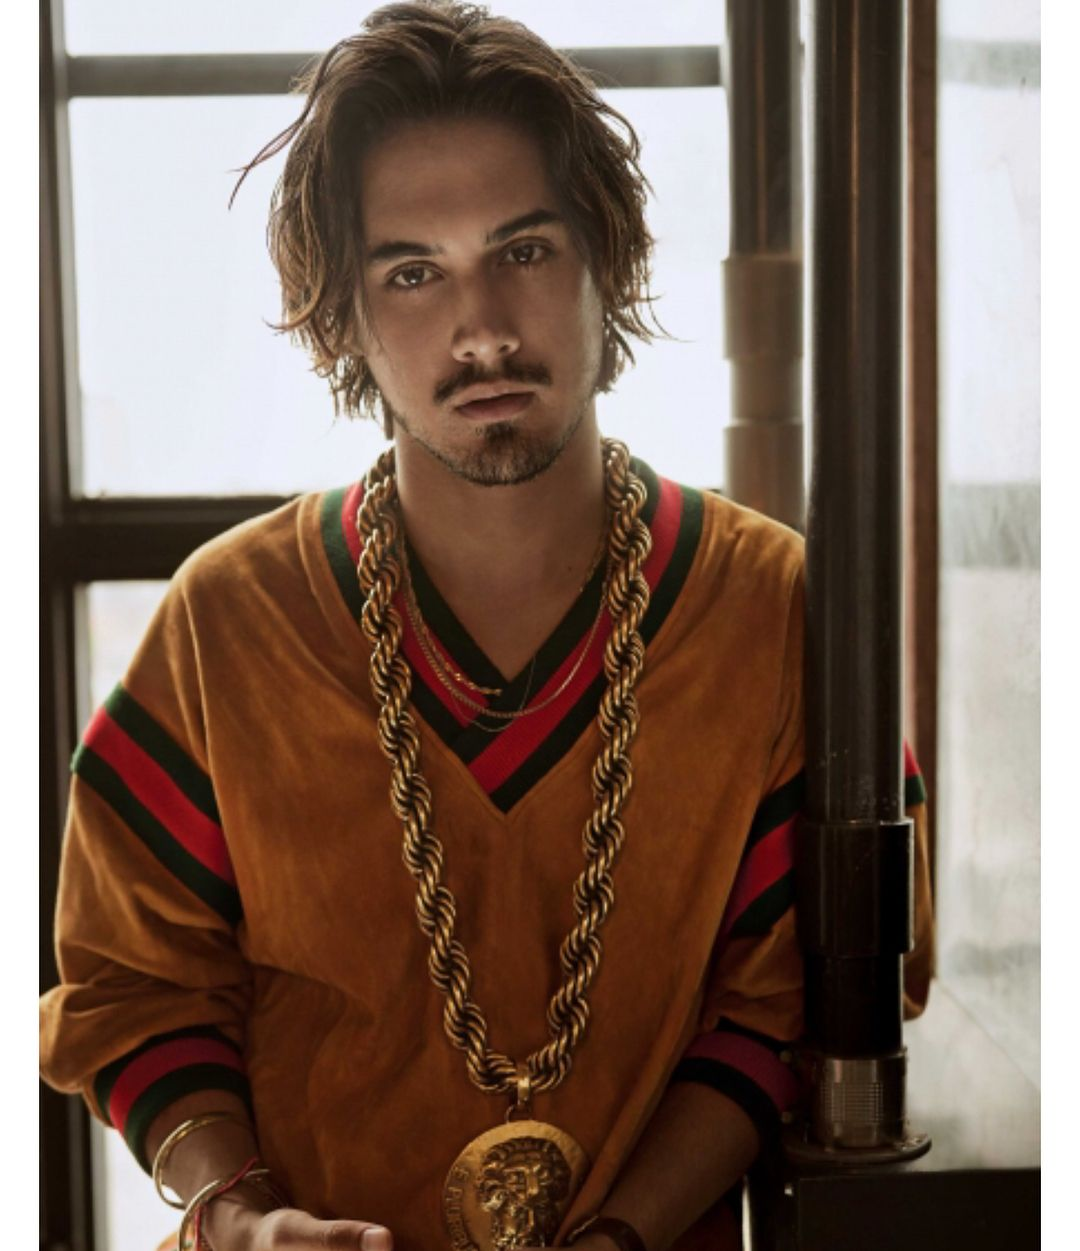 Avan Jogia On Instagram Gucci X Dapperdanharlem For Elleindiaofficial Text Writer Nevillebhandar Long Hair Styles Men Hair And Beard Styles Avan Jogia